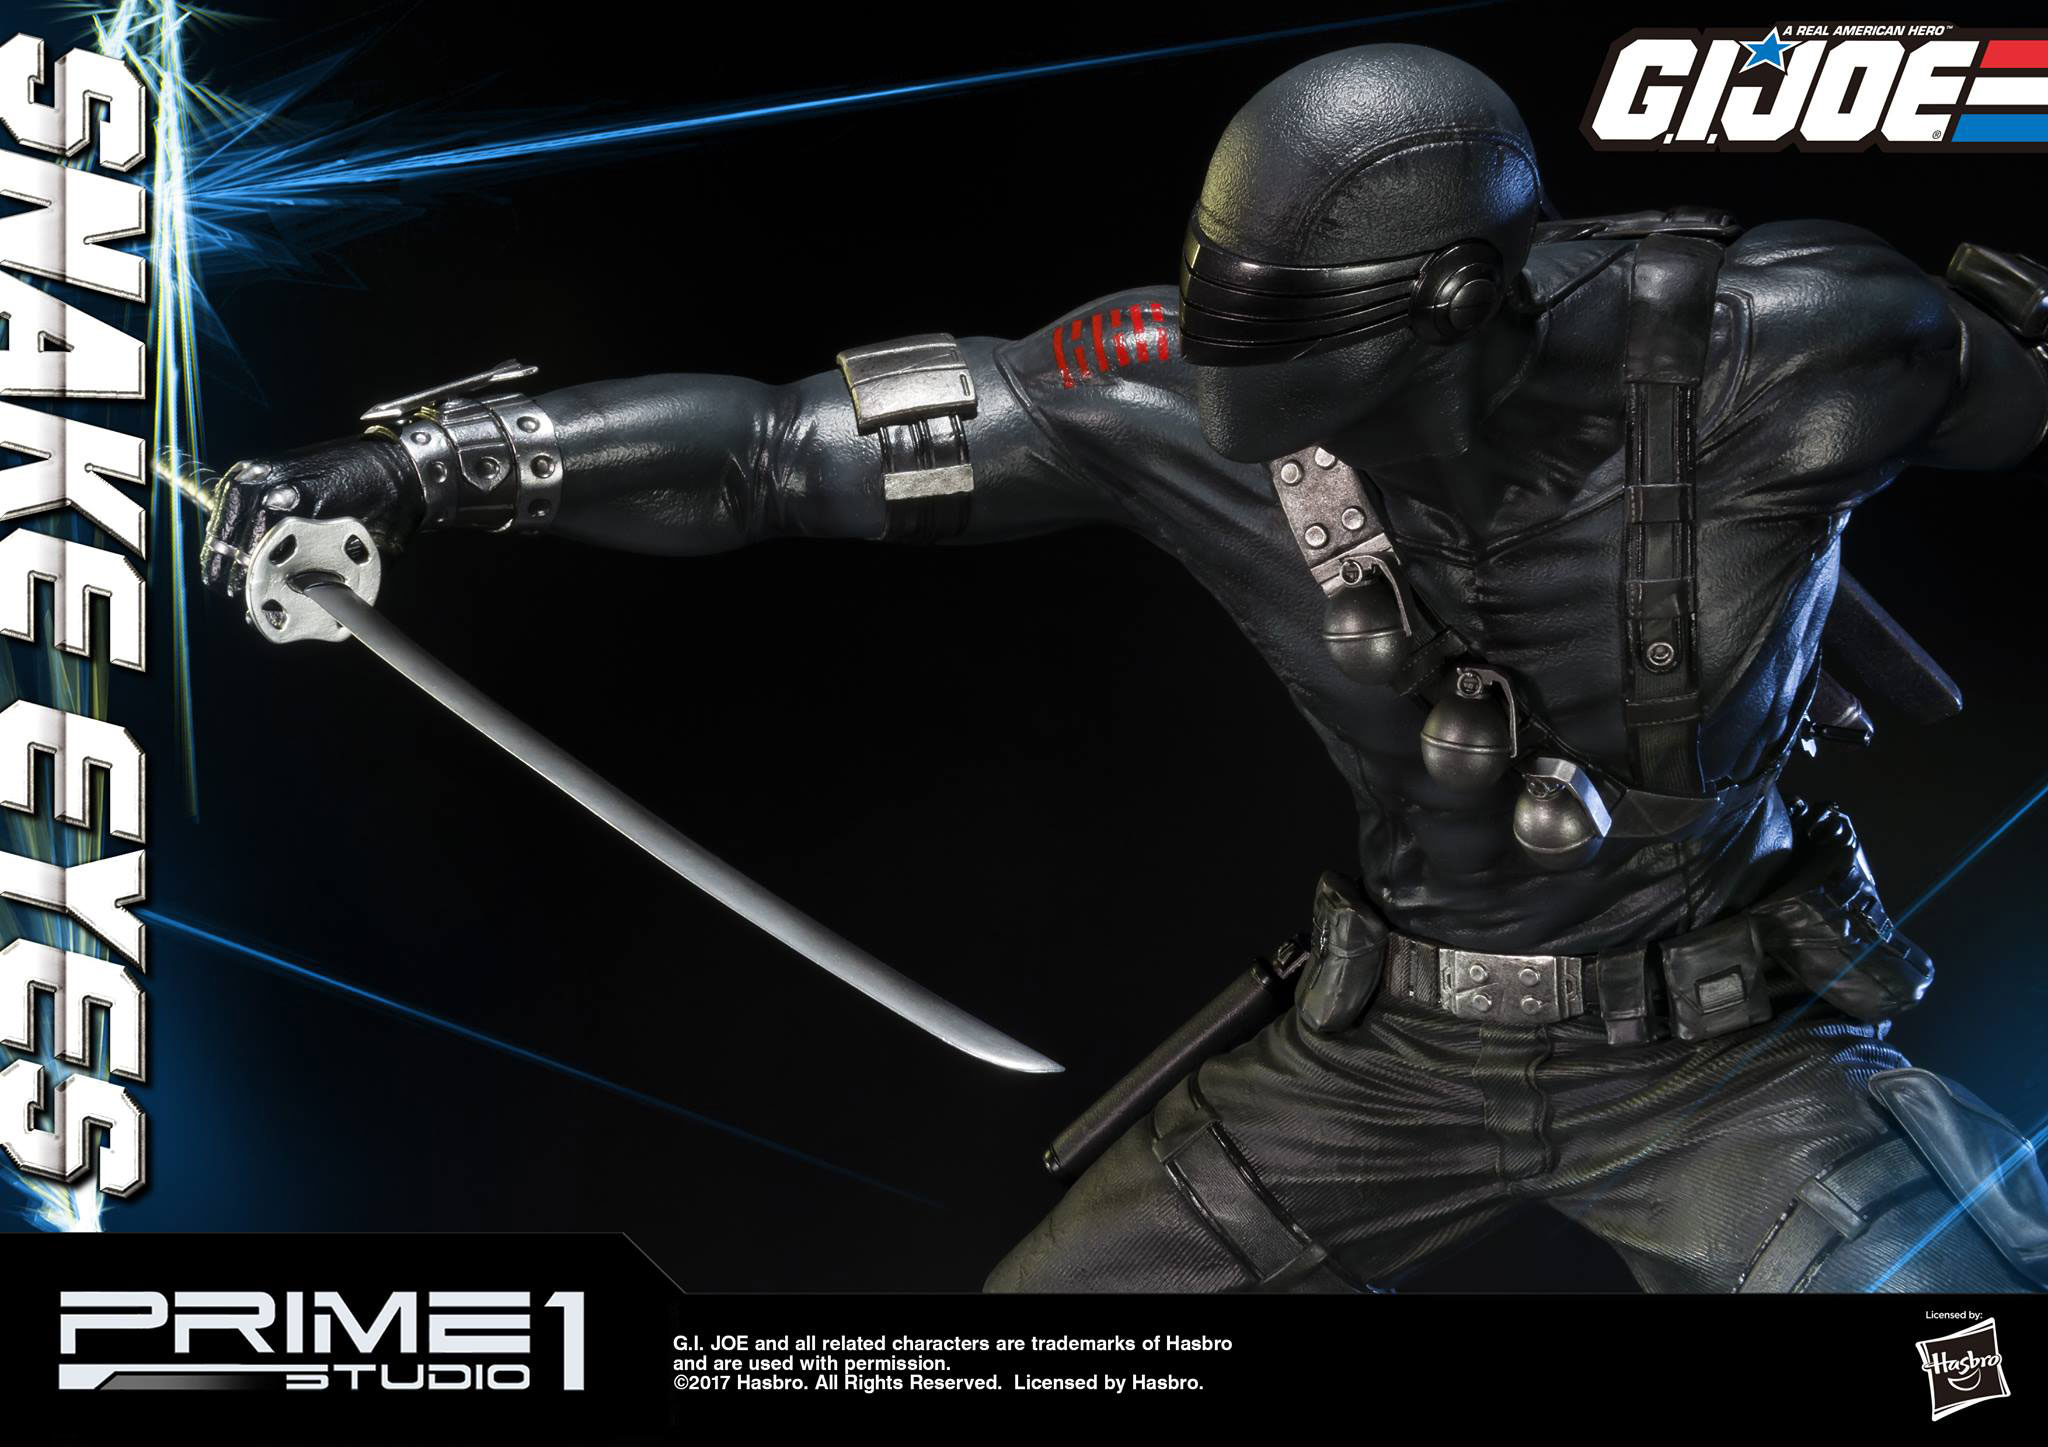 prime-1-studio-snake-eyes-gi-joe-statue-3